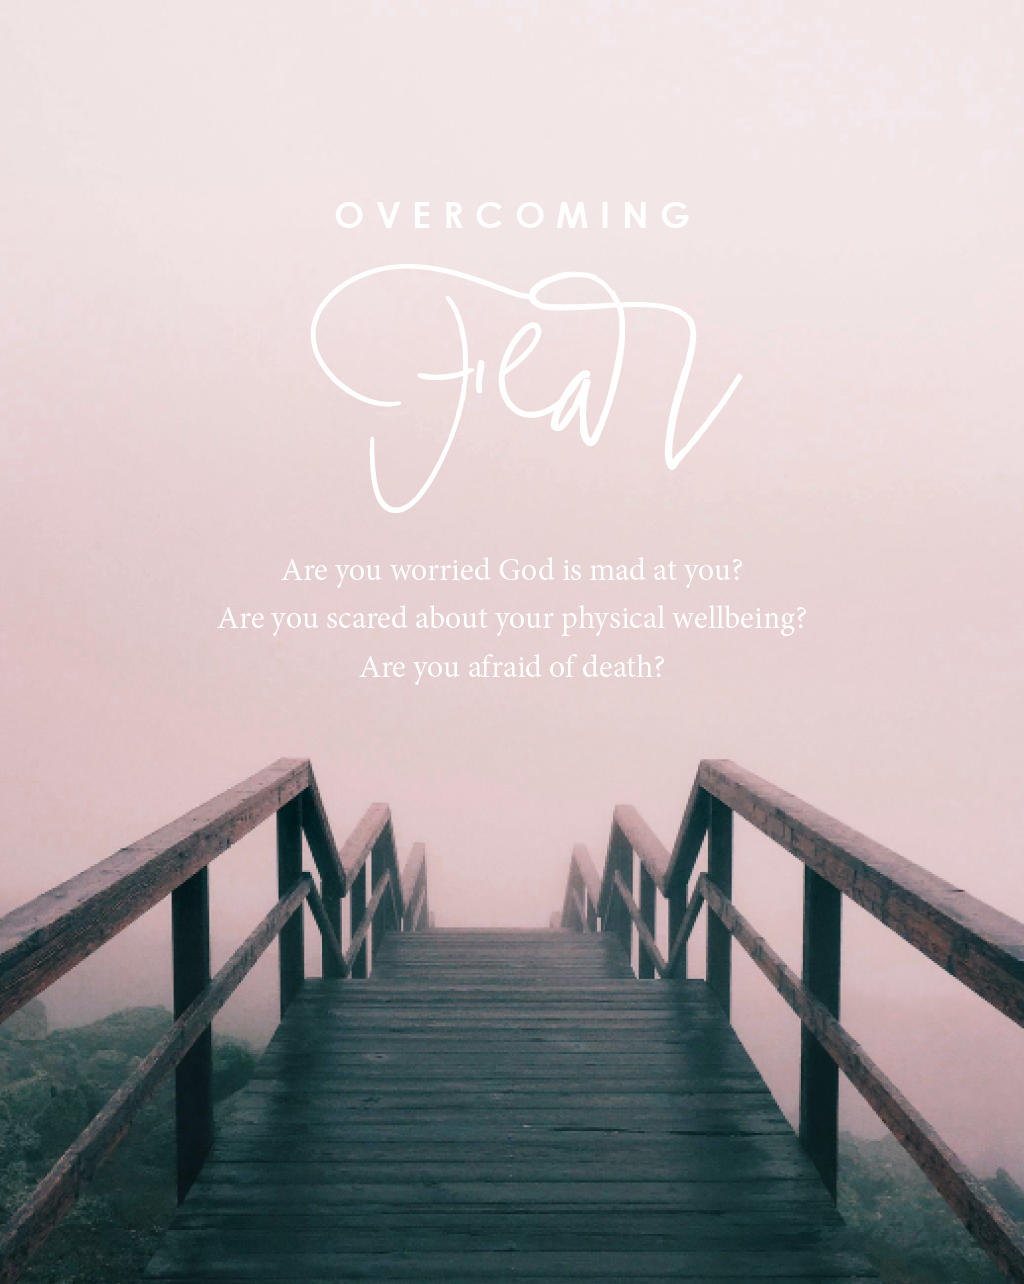 Overcoming fear - are you worried god is mad at you